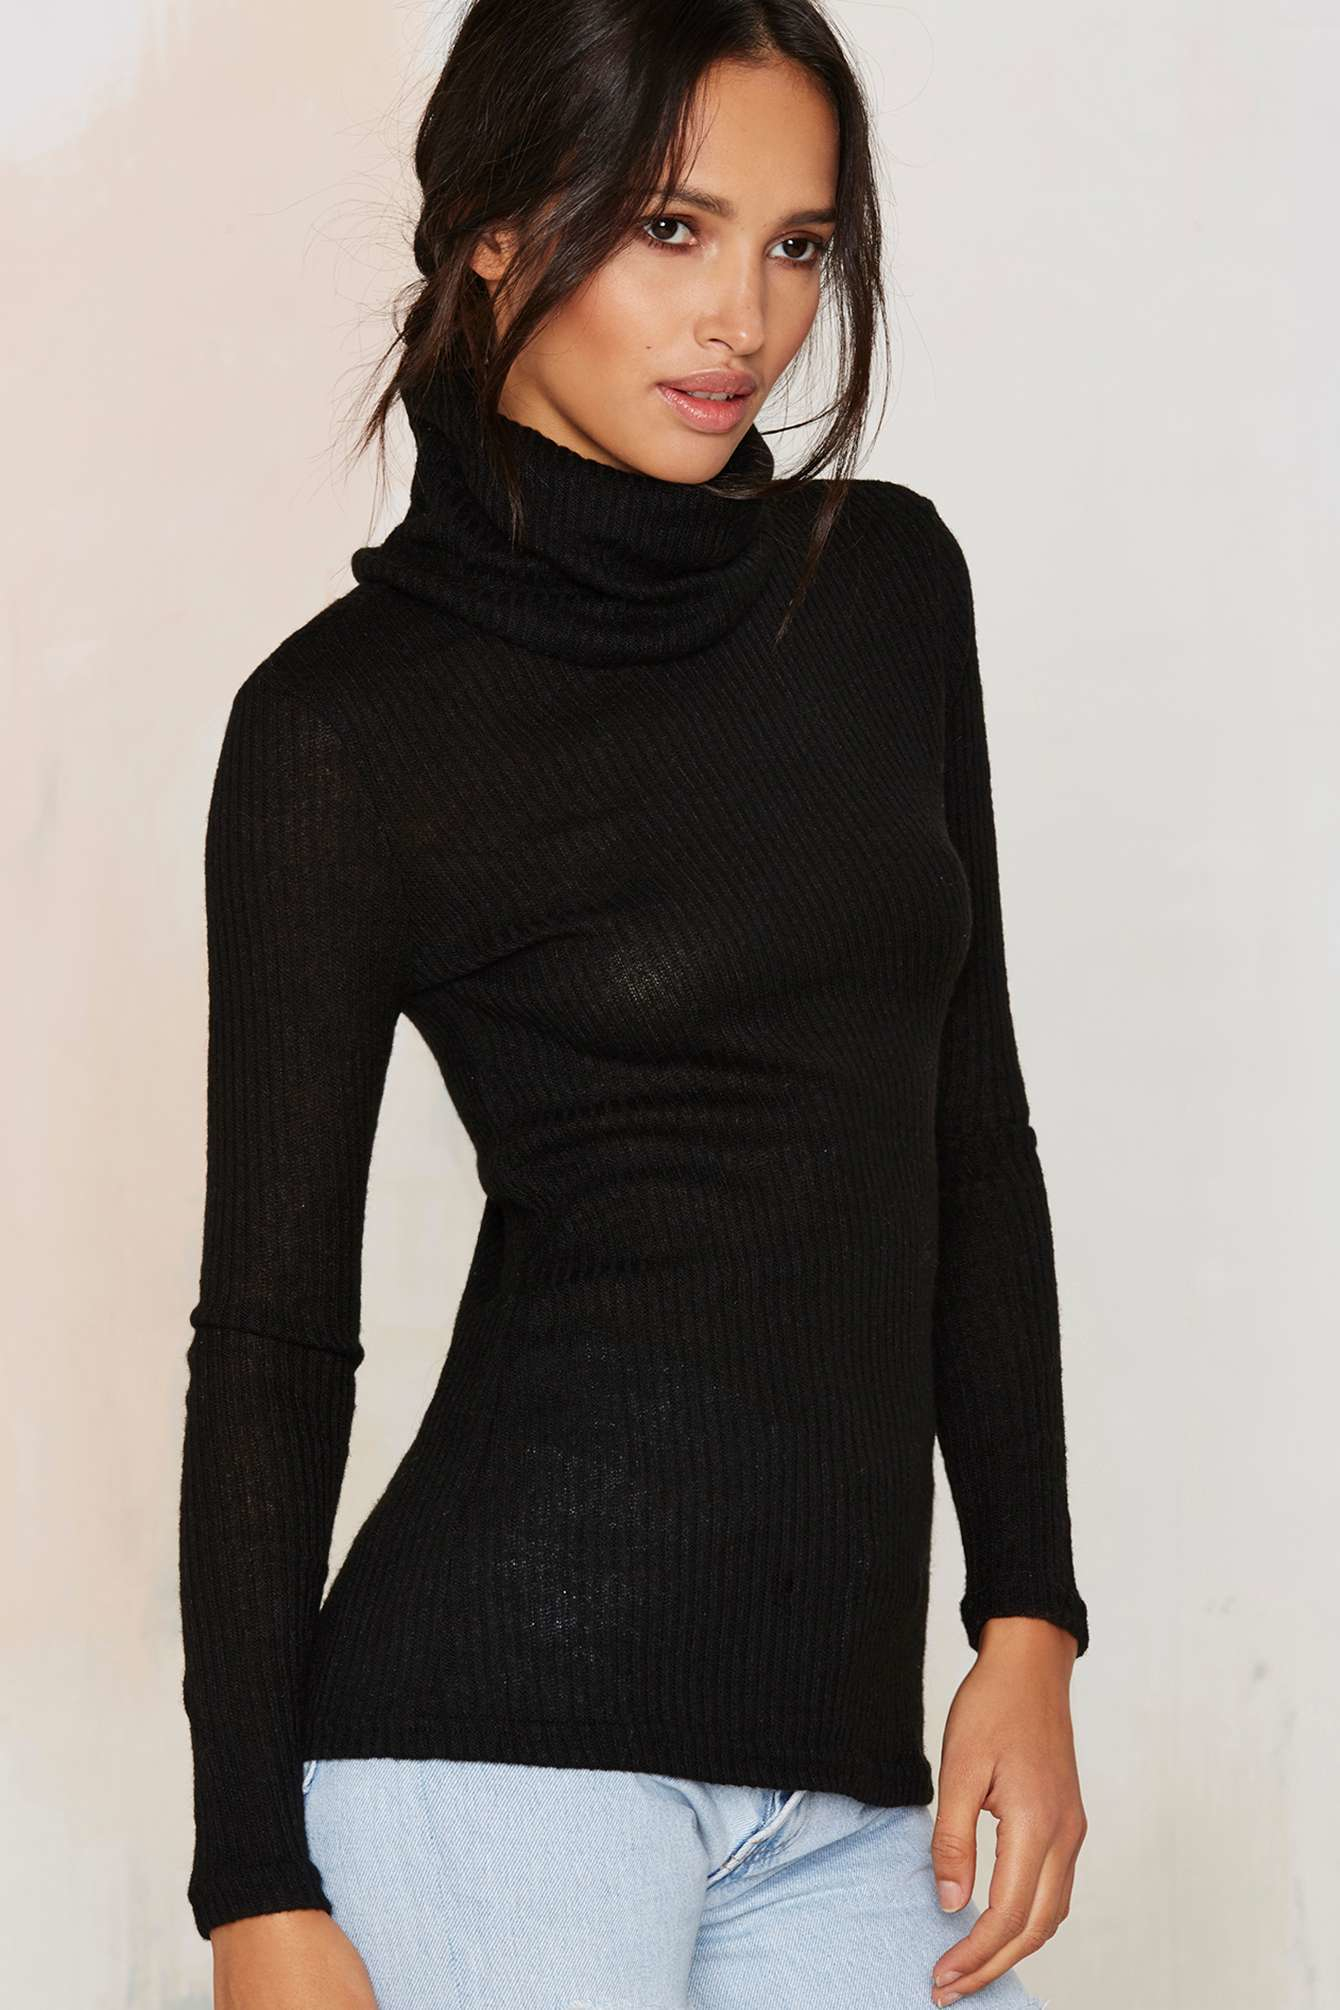 100  [ Ribbed Turtleneck Sweater ] | Jean Paul Gaultier Ribbed ...